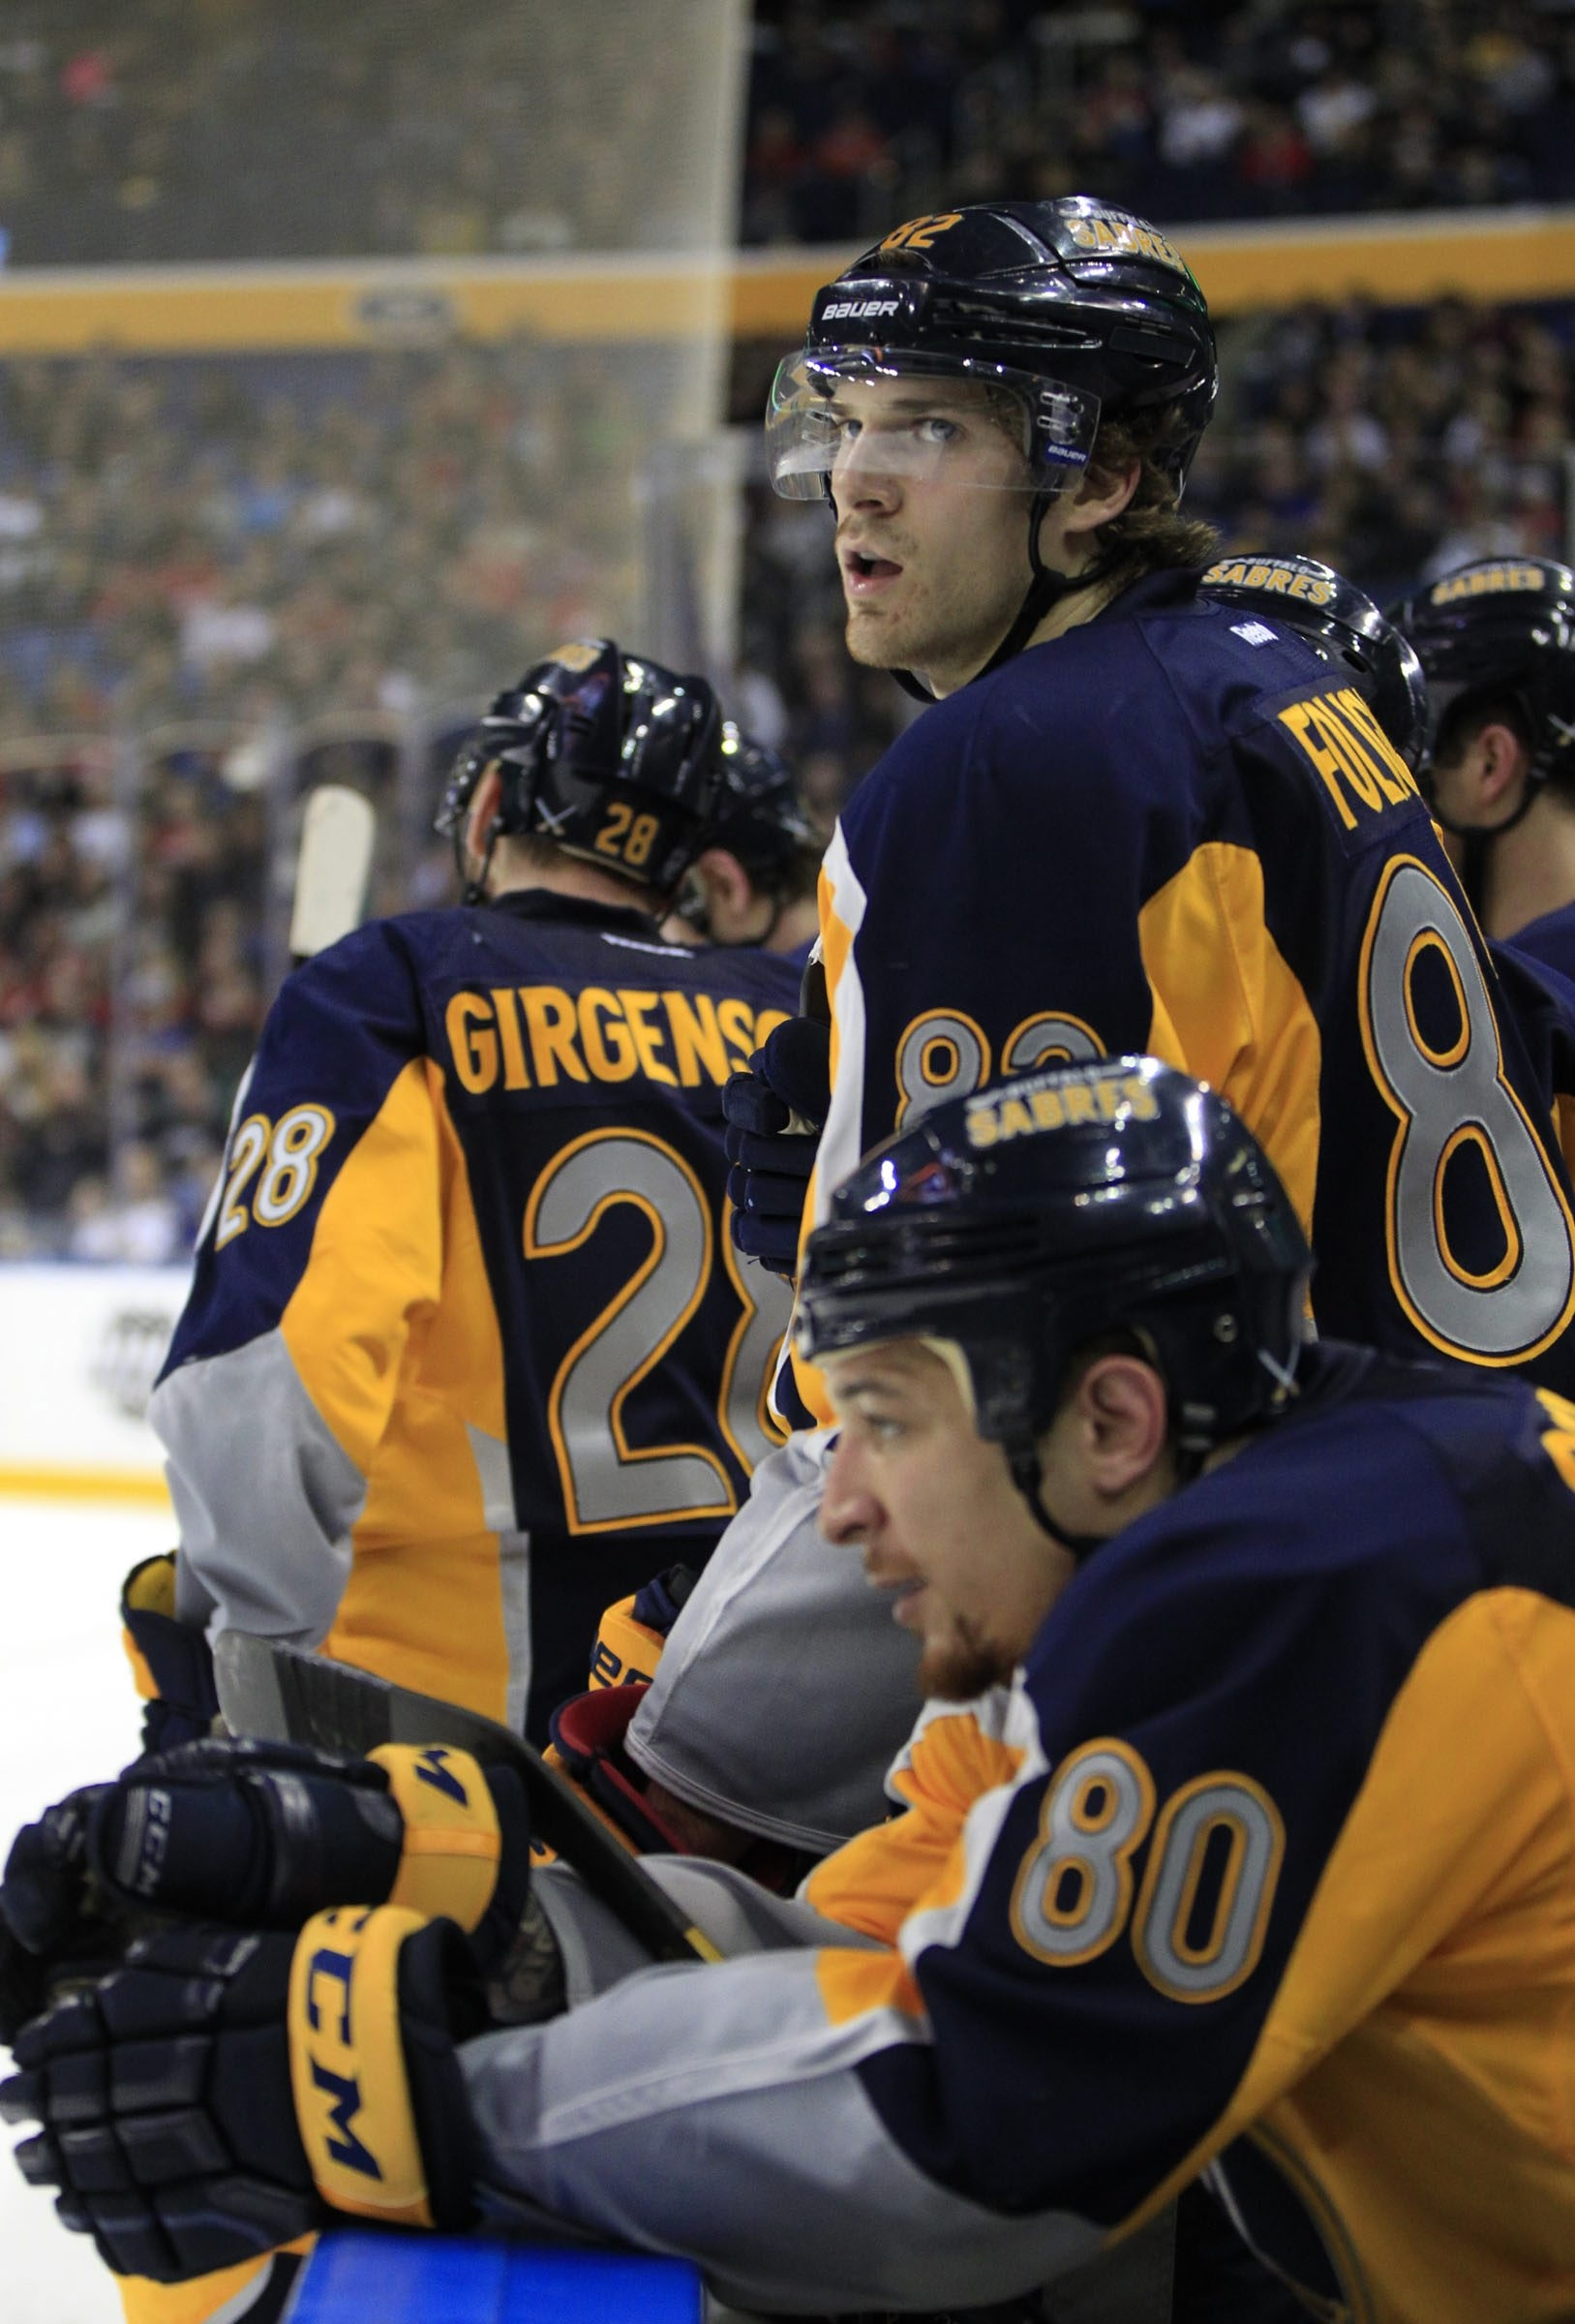 Sabres' Marcus Foligno knows he has to consistently play at a high level to get ice time.